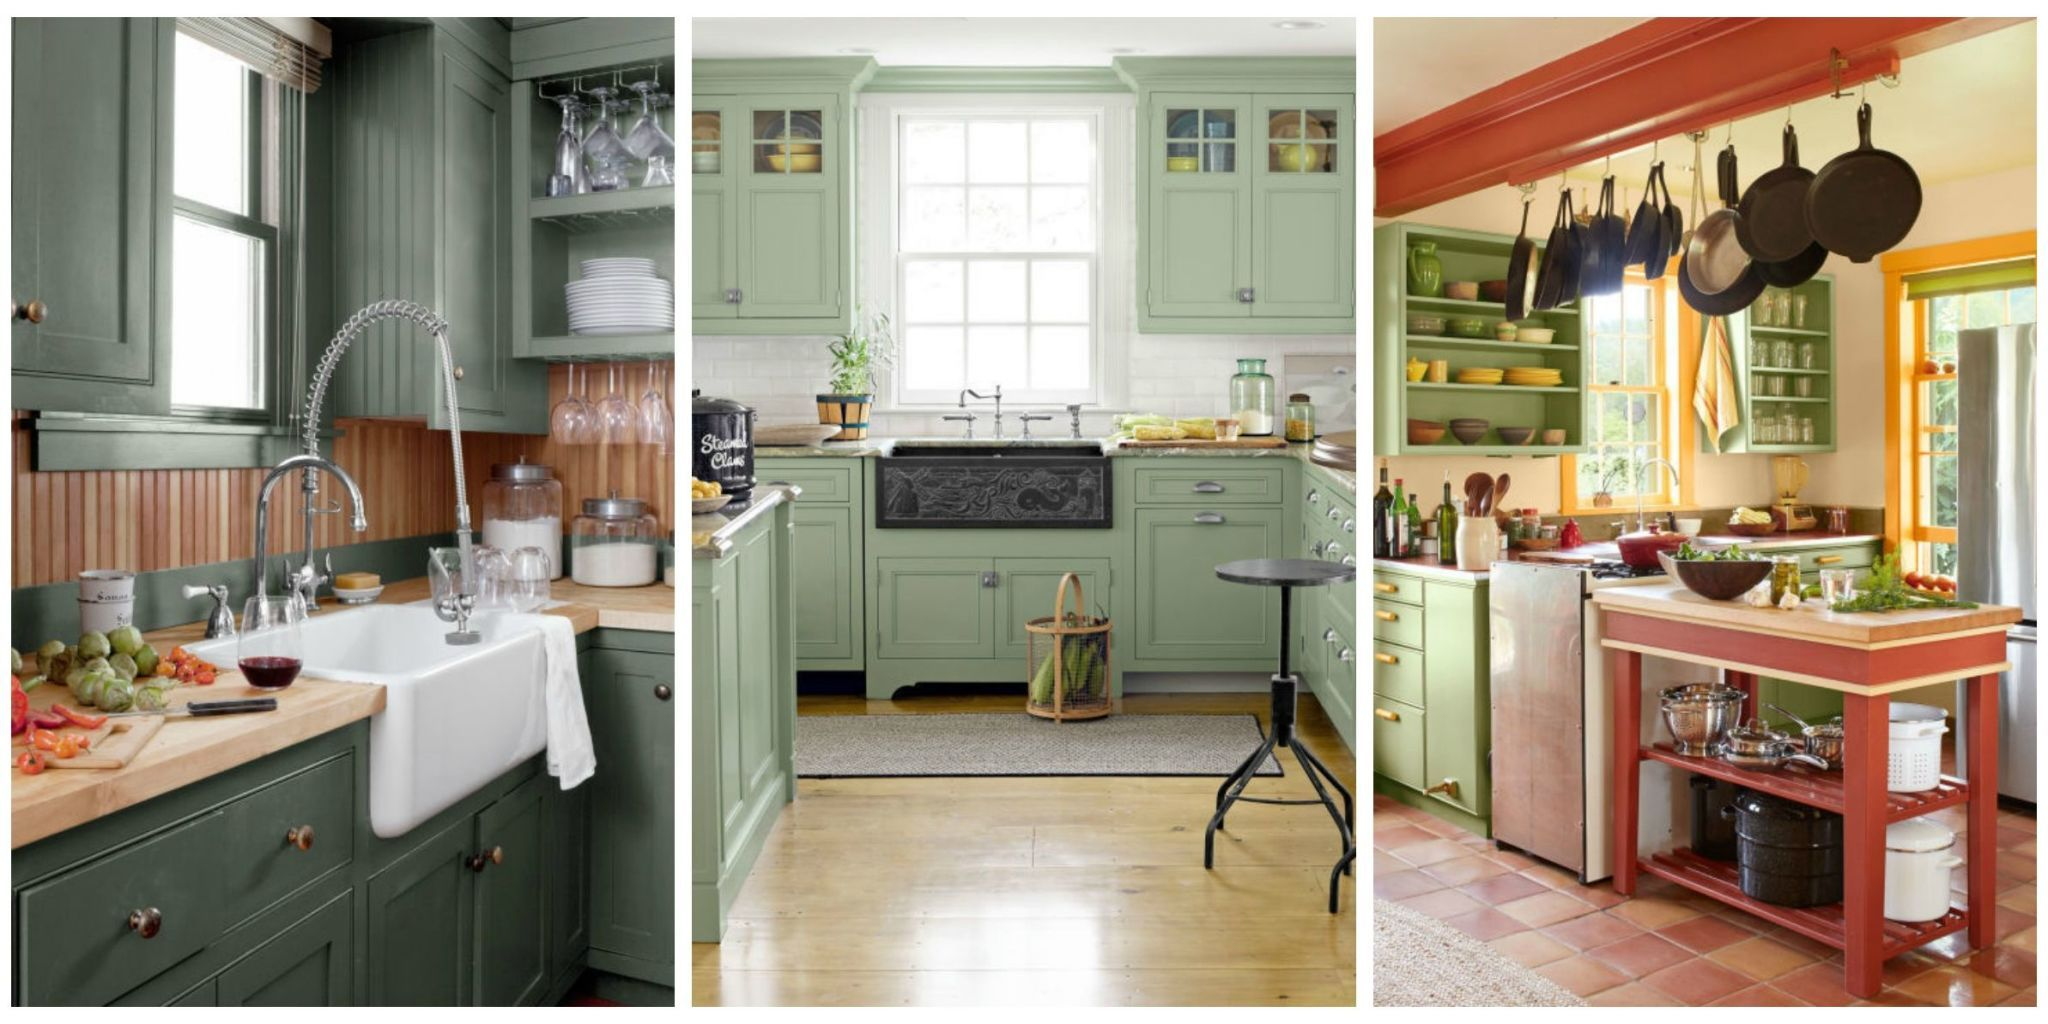 Beautiful Weu0027re Here To Give You The Green Light To Proceed With Your Next Home  Improvement Project! With Paint Options Ranging From Mint To Sage, These Green  Kitchen ...